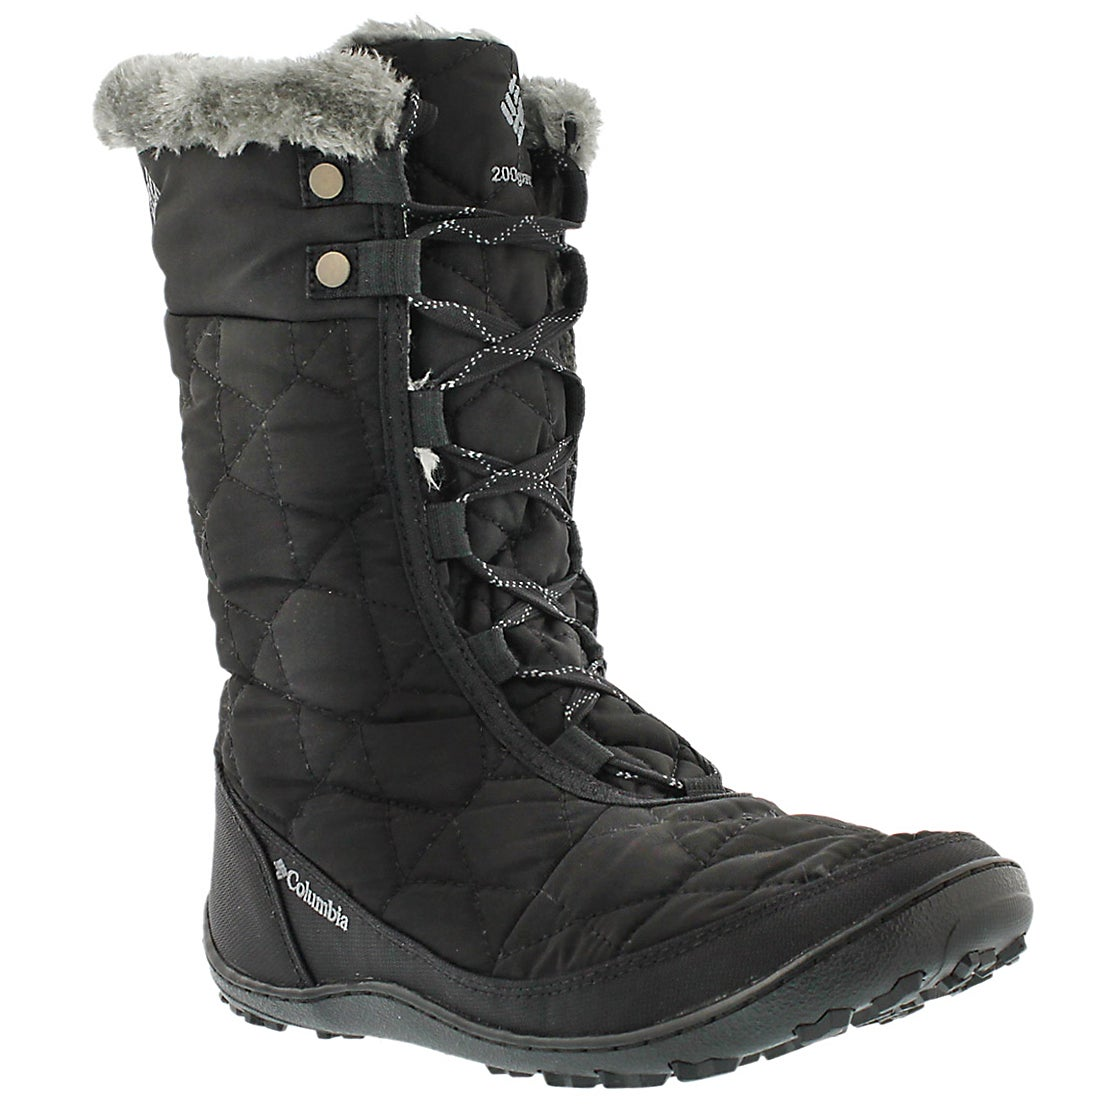 Womens Snow Boots Clearance Sale | Homewood Mountain Ski Resort